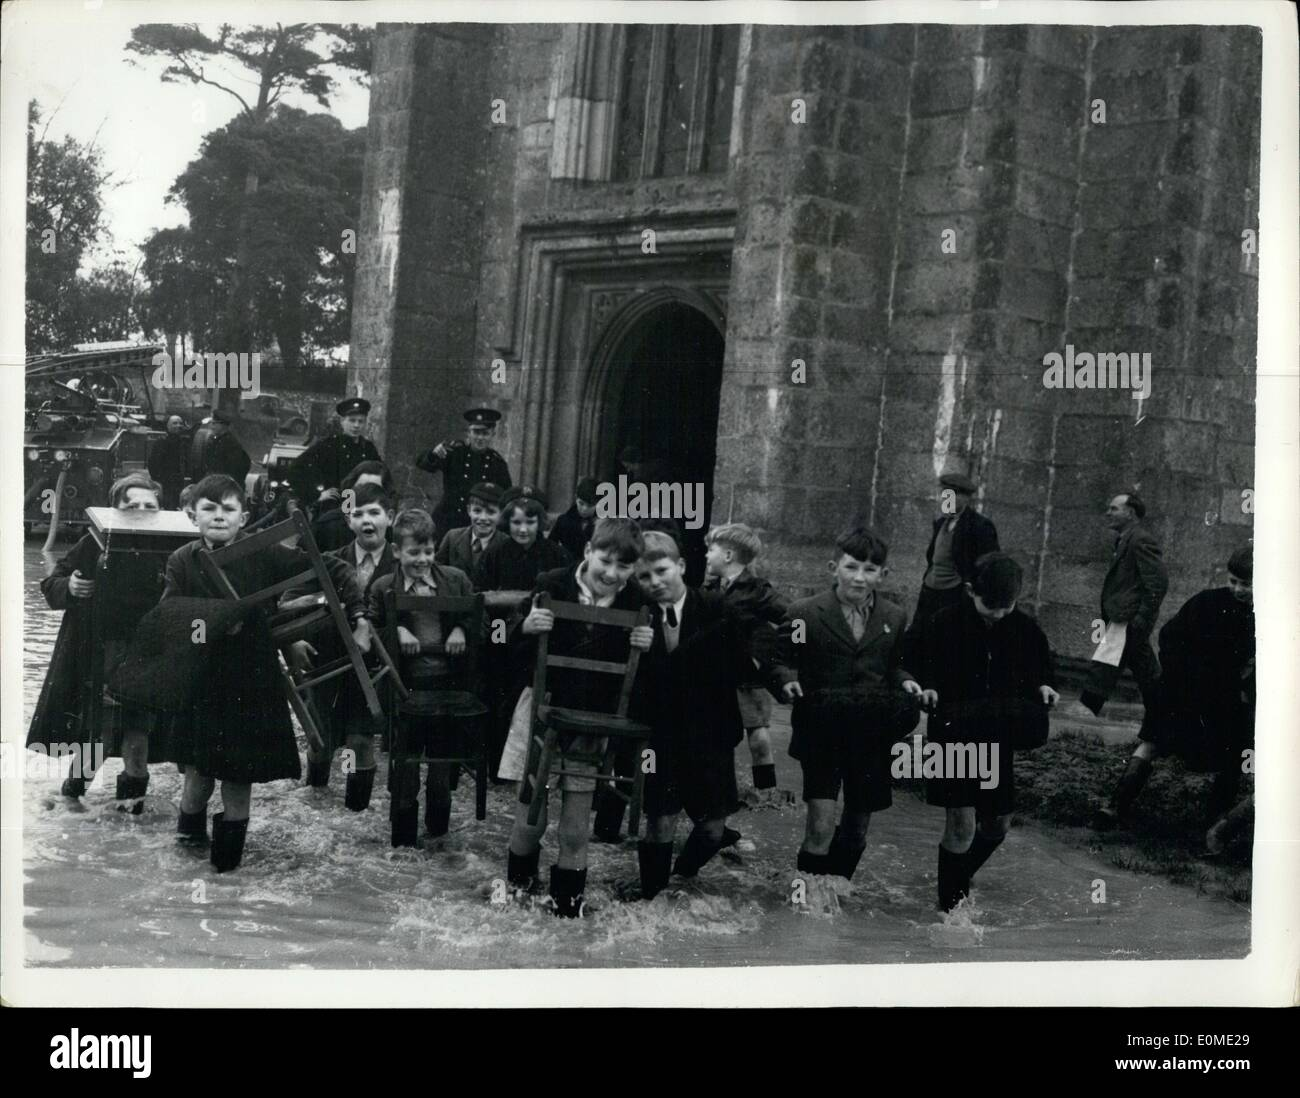 Nov. 11, 1954 - FLOODS IN DEVON: PHOTO SHOWS:- Schoolchildren, of Plympton, Devon, the were evacuated from their Stock Photo